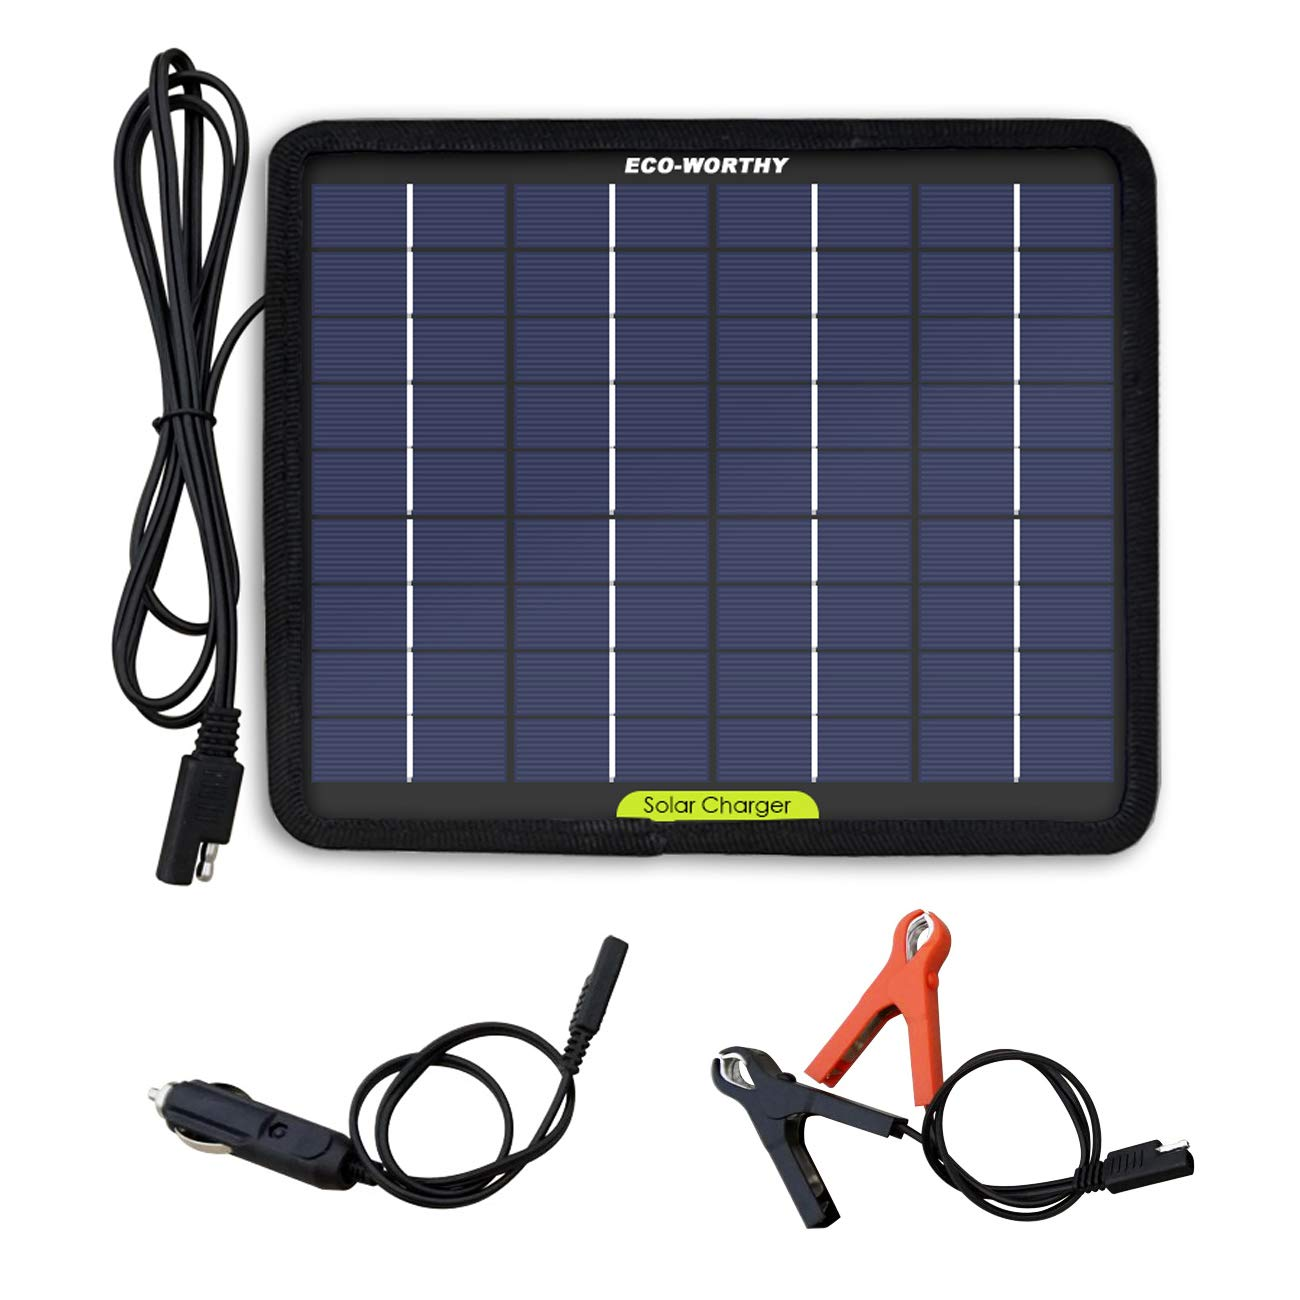 ECO-WORTHY 12 Volts 5 Watts Portable Power Solar Panel Battery Charger Backup for Car Boat Batteries by ECO-WORTHY